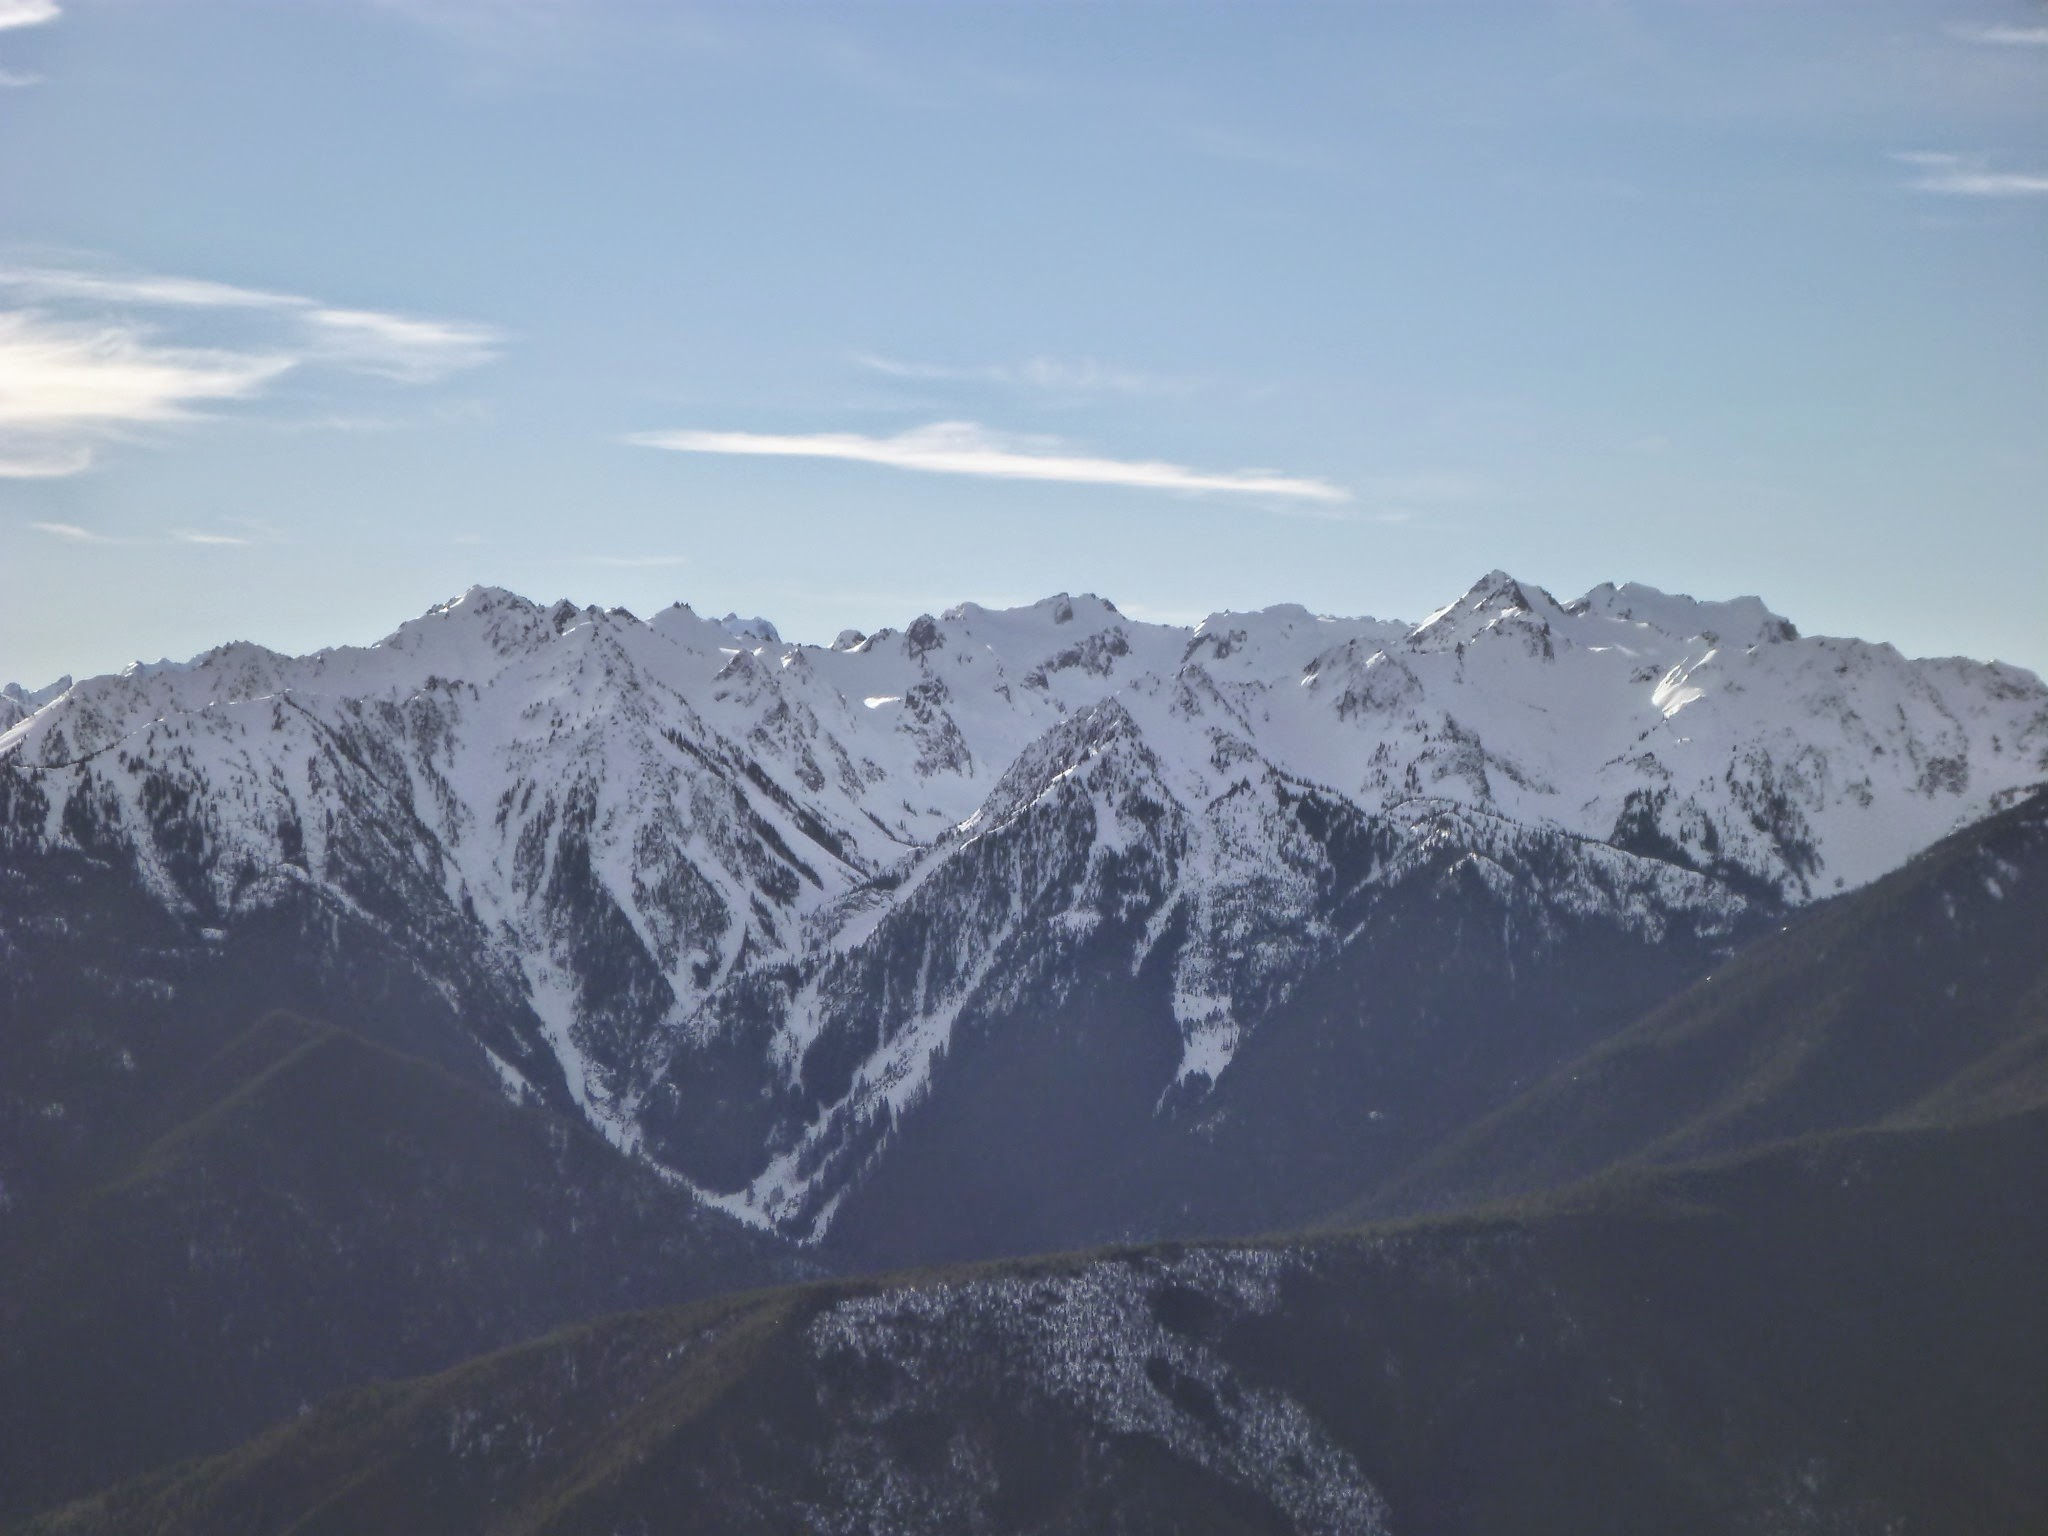 Distant snow covered mountains across a valley at Hurricane Ridge in Olympic National Park